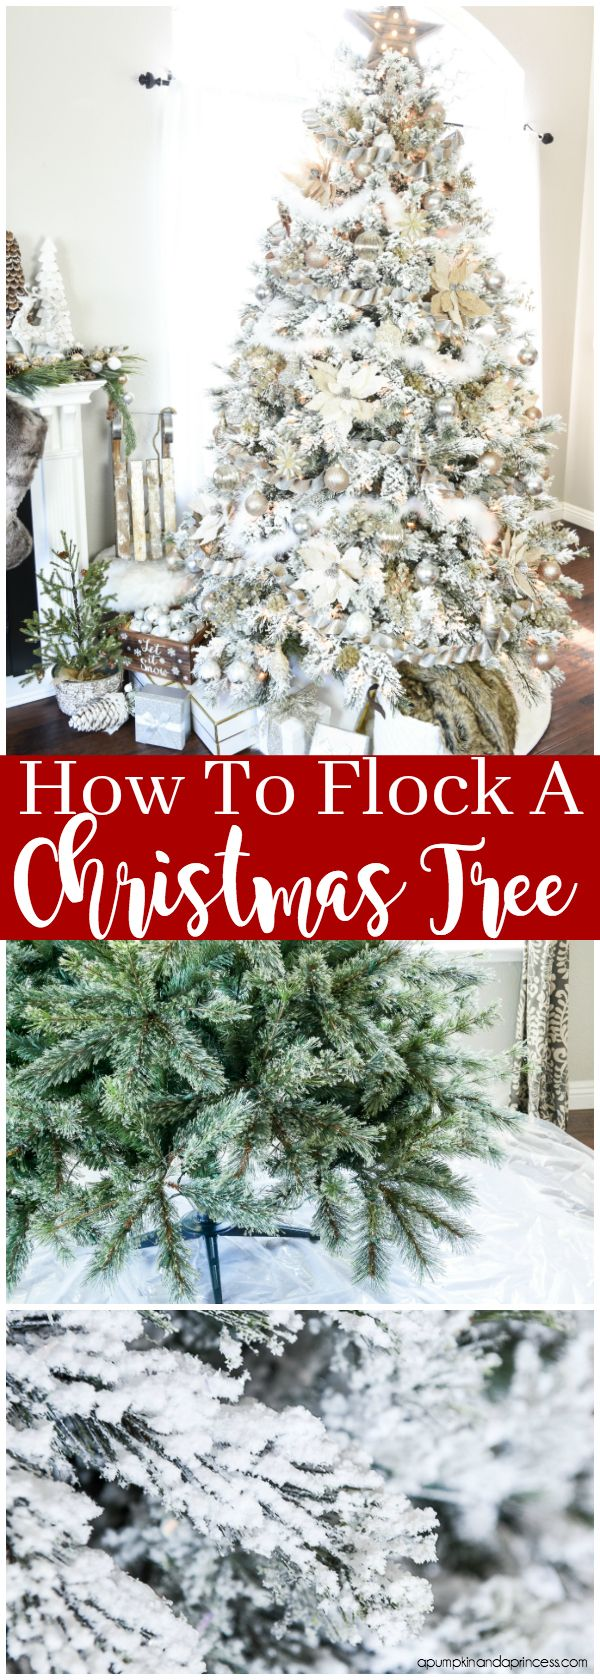 How to flock a christmas tree artificial tree christmas tree and snow how to flock a christmas tree create a snow effect on your artificial tree with this easy diy flocking tutorial solutioingenieria Image collections